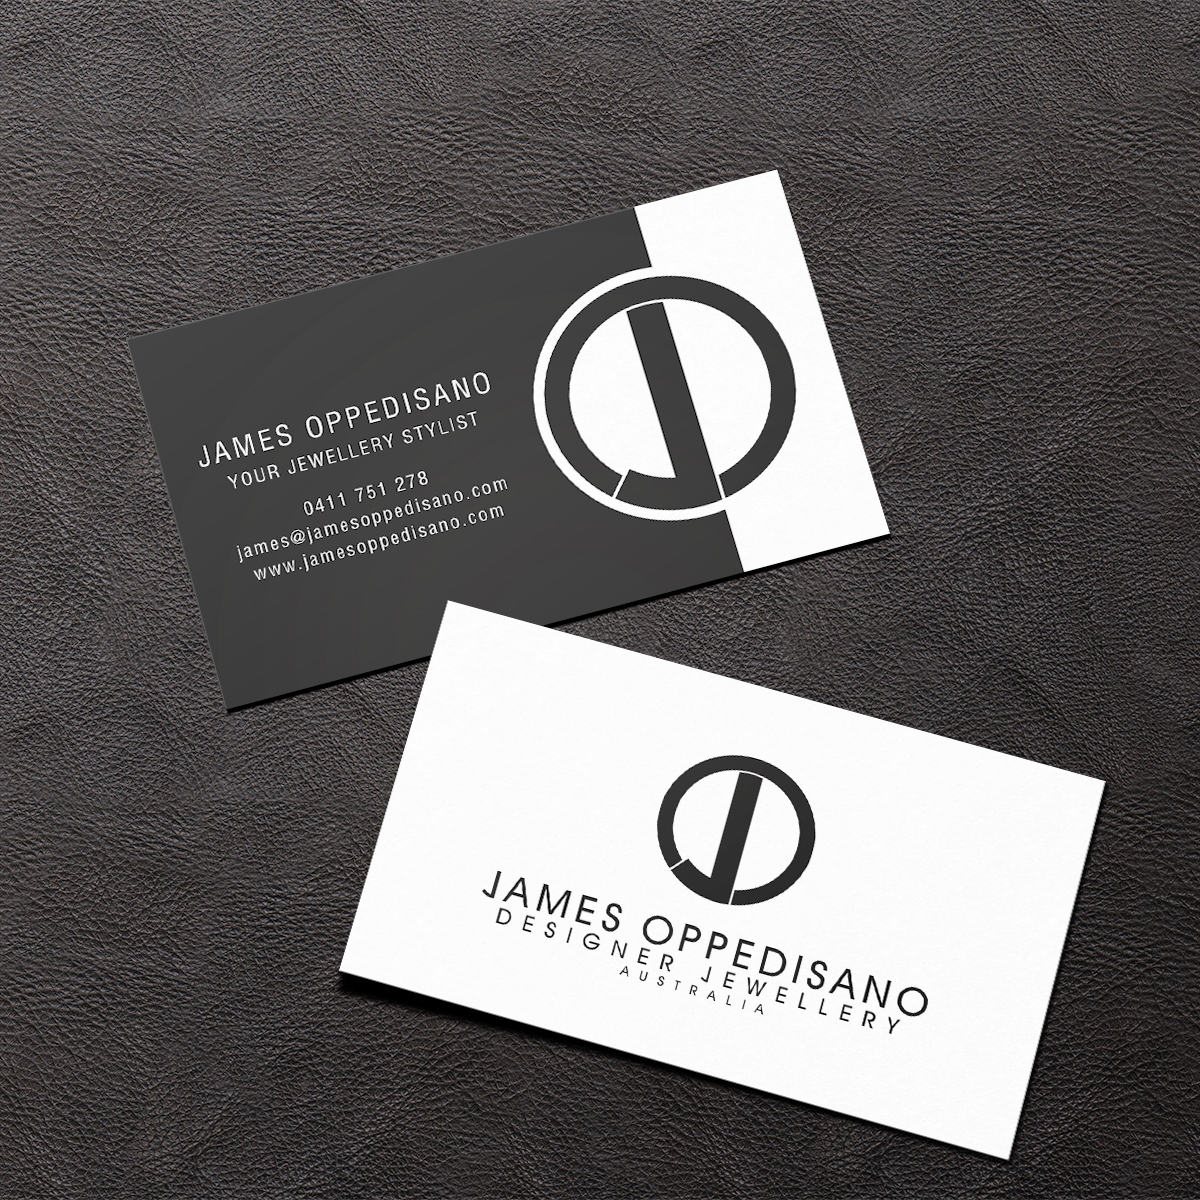 Serious, Professional, Printing Business Card Design for a Company ...